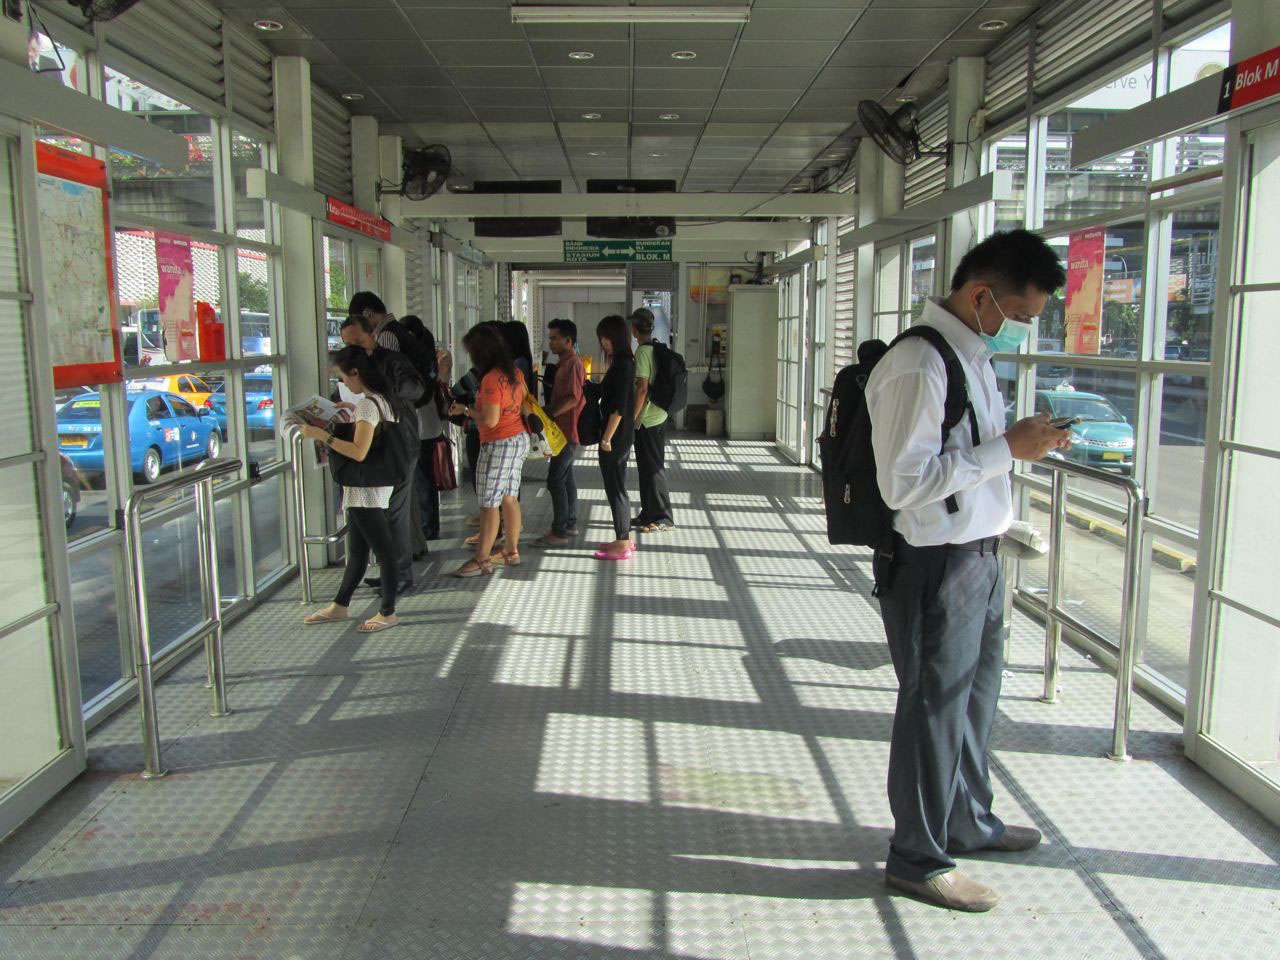 Fig. 29.3 Third component of pedestrian access to a BRT system: circulation inside the station itself (Jakarta, Indonesia).